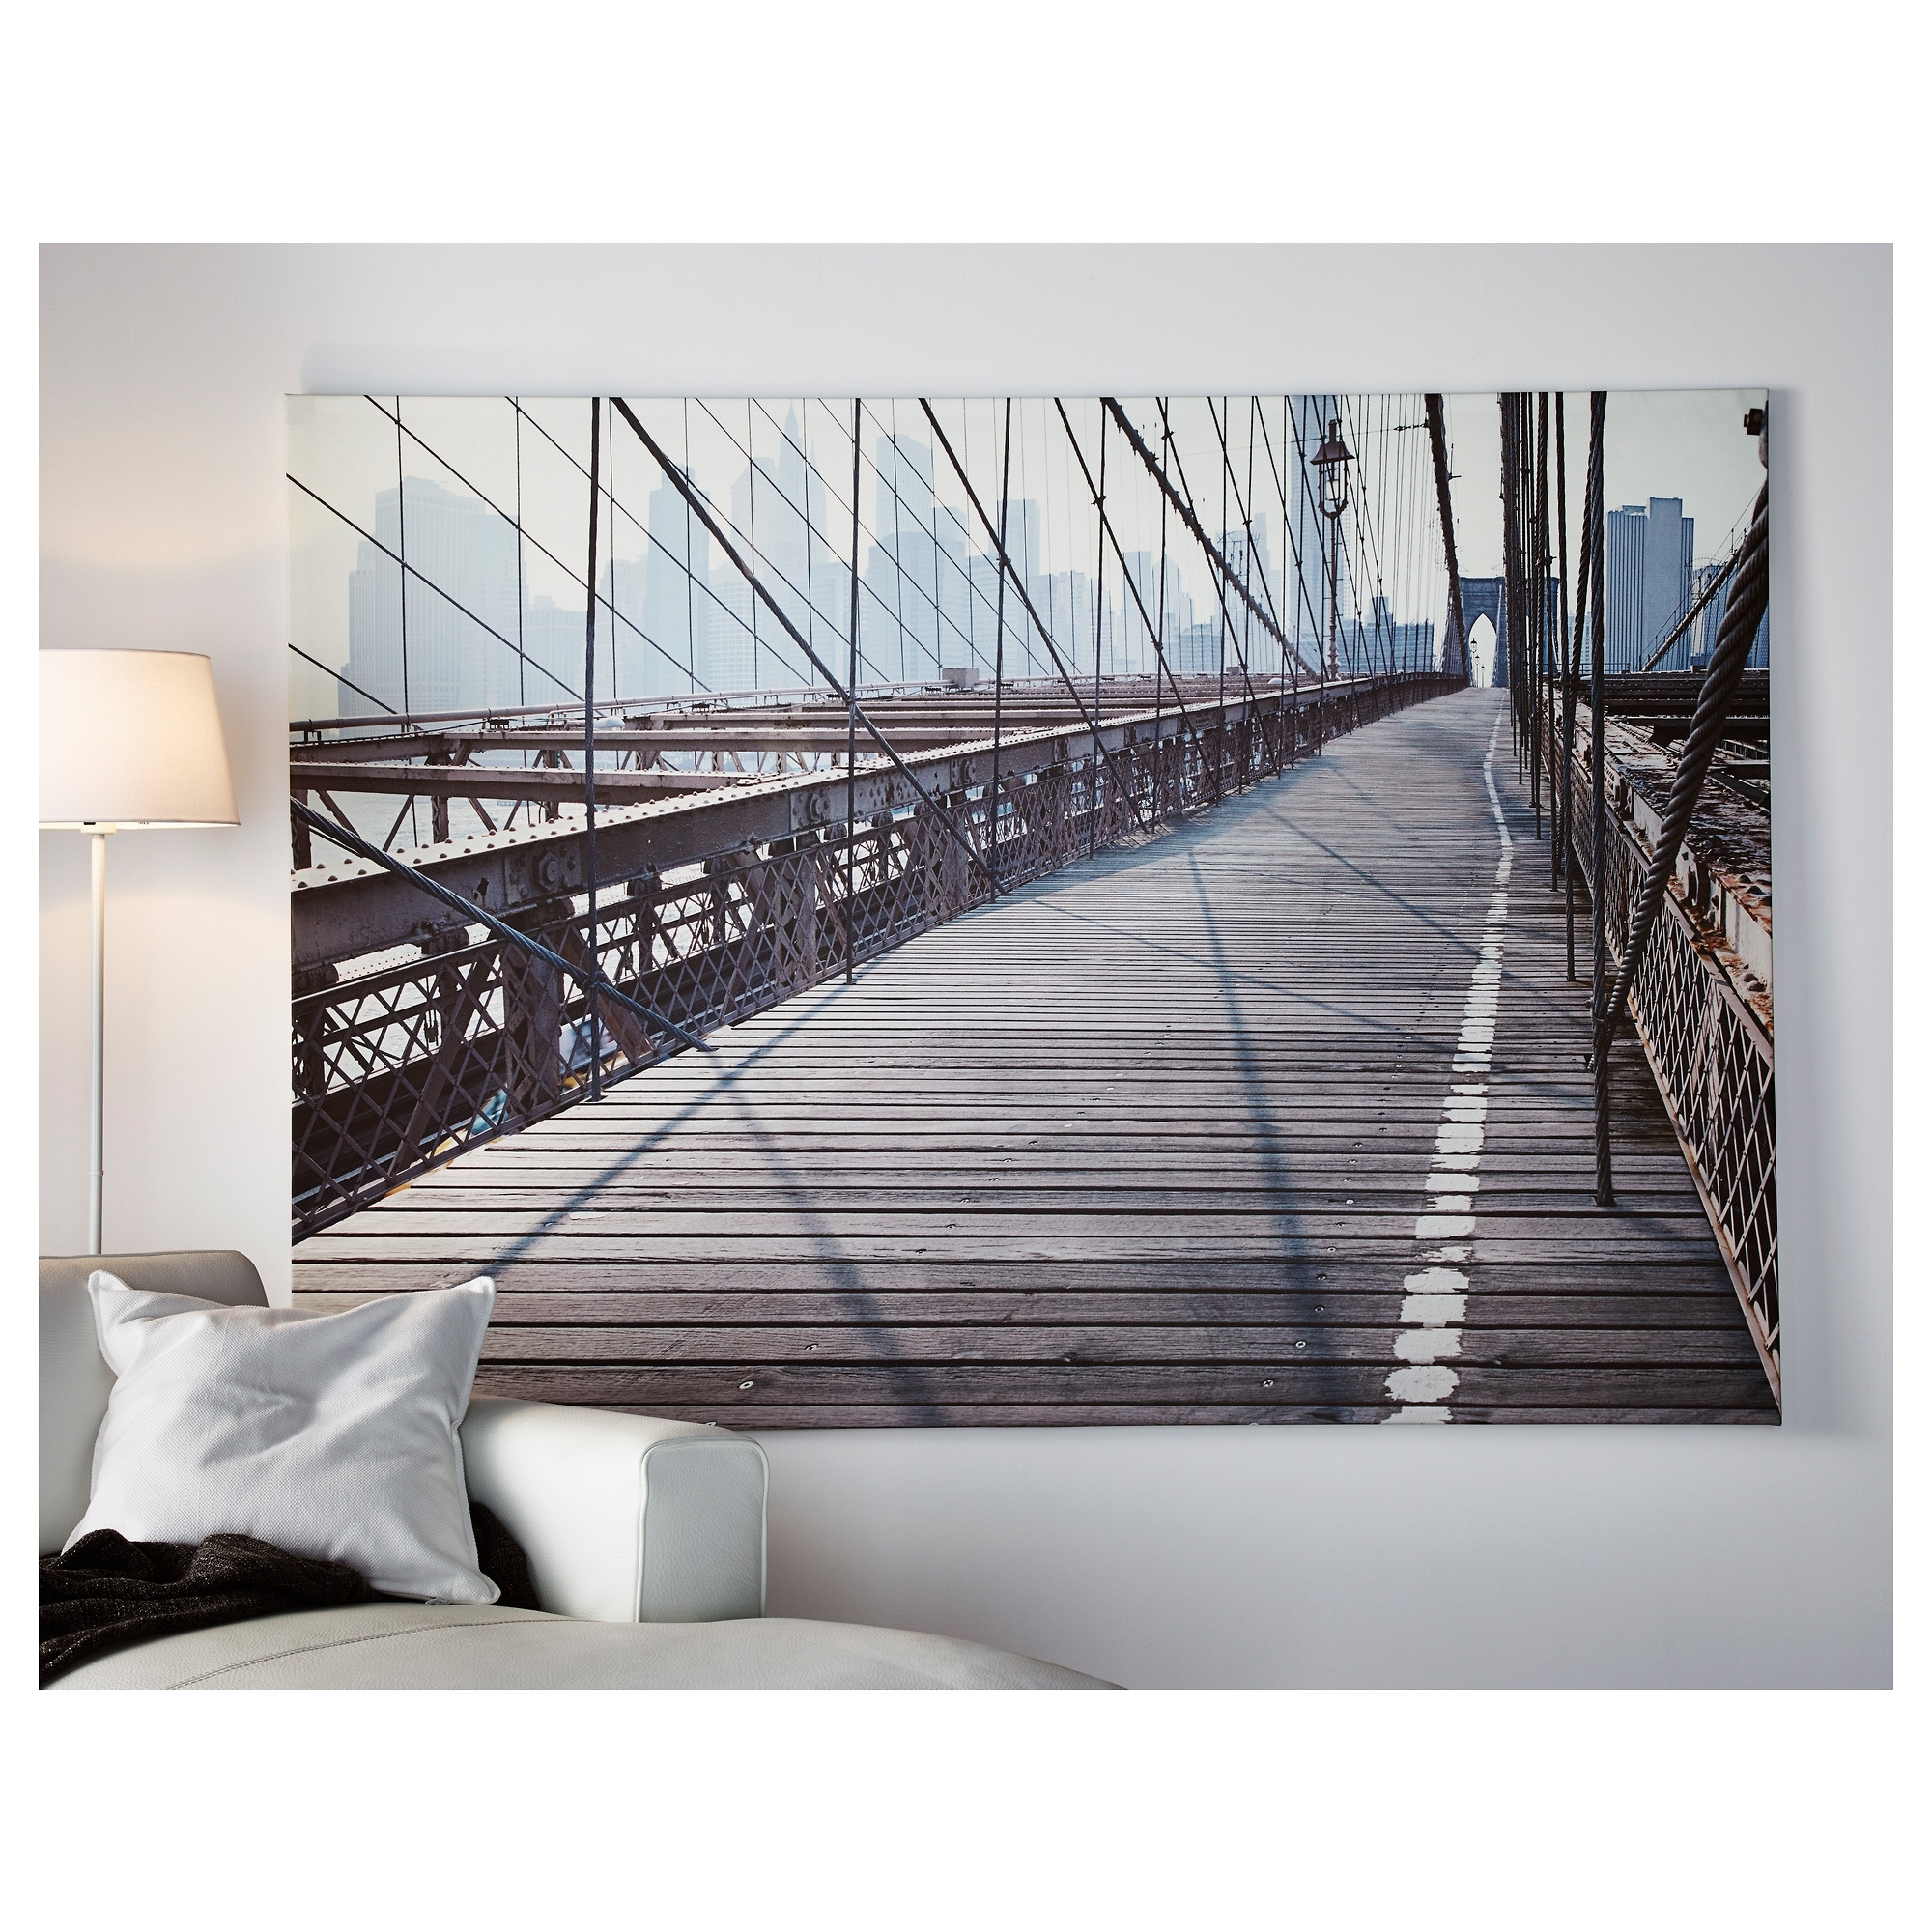 40 Super Design Ideas Ikea Wall Art Canvas | Panfan Site For Best And Newest Ikea Canvas Wall Art (View 2 of 15)